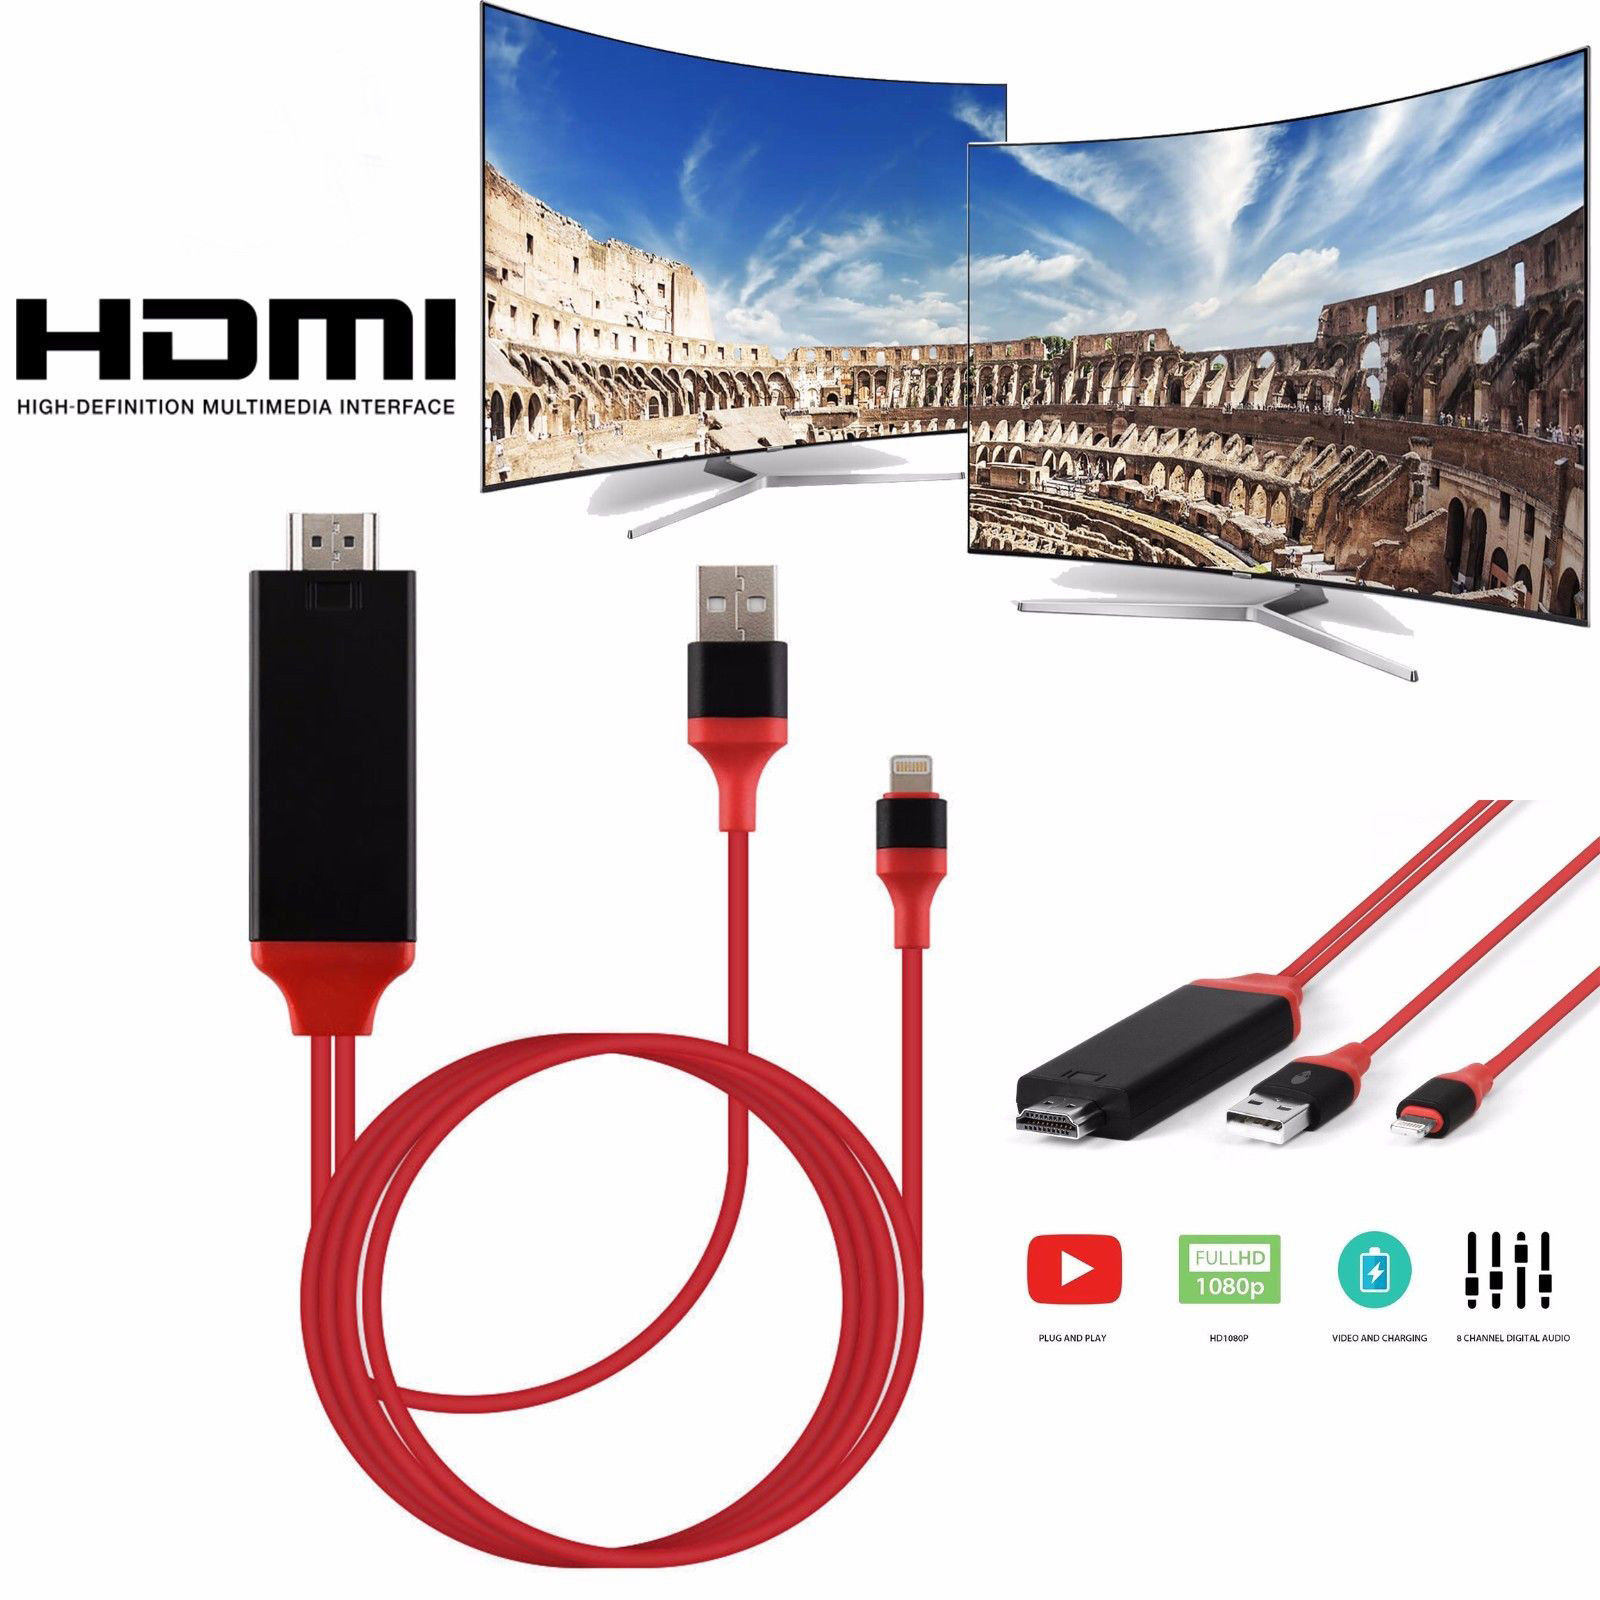 100% Quality Usb To Hdmi Tv Adapter Mirror Hd 1080 Otg Mhl Charger Cable For Android Luxuriant In Design